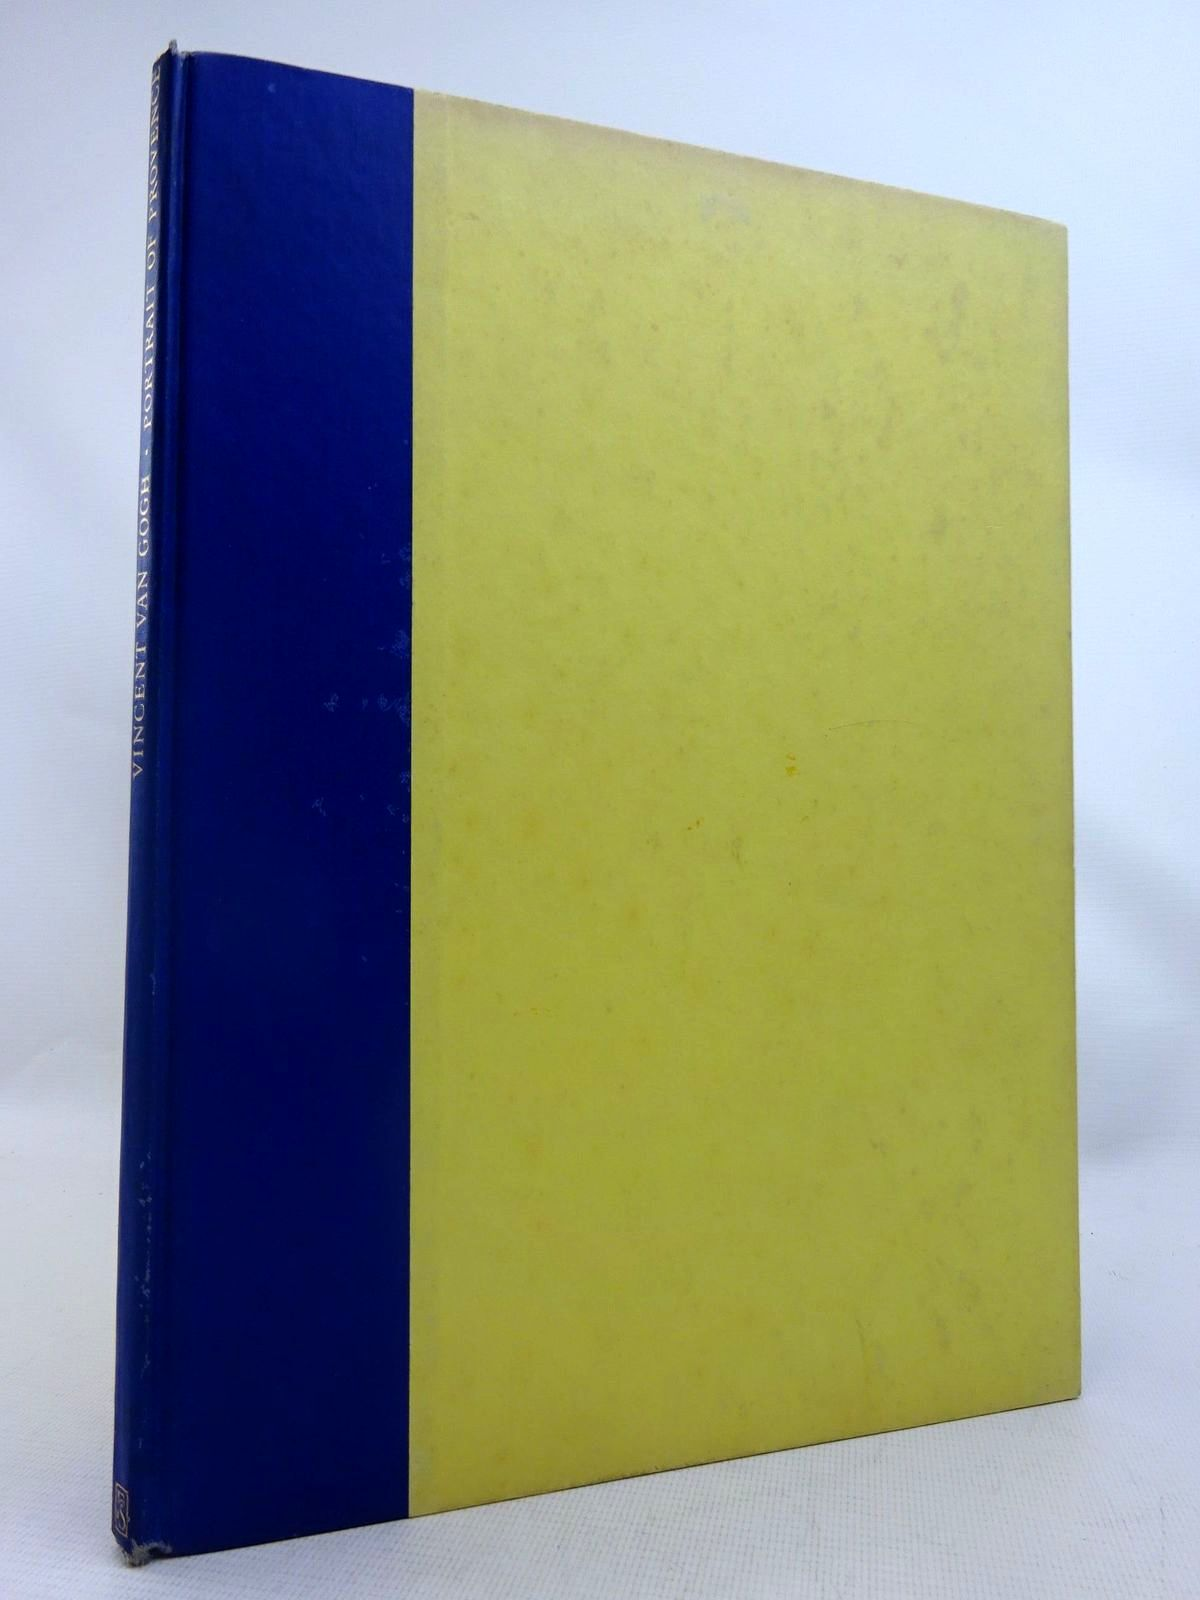 Photo of VINCENT VAN GOGH: PORTRAIT OF A PROVENCE written by Piper, David illustrated by Van Gogh, Vincent published by Folio Society (STOCK CODE: 1816514)  for sale by Stella & Rose's Books